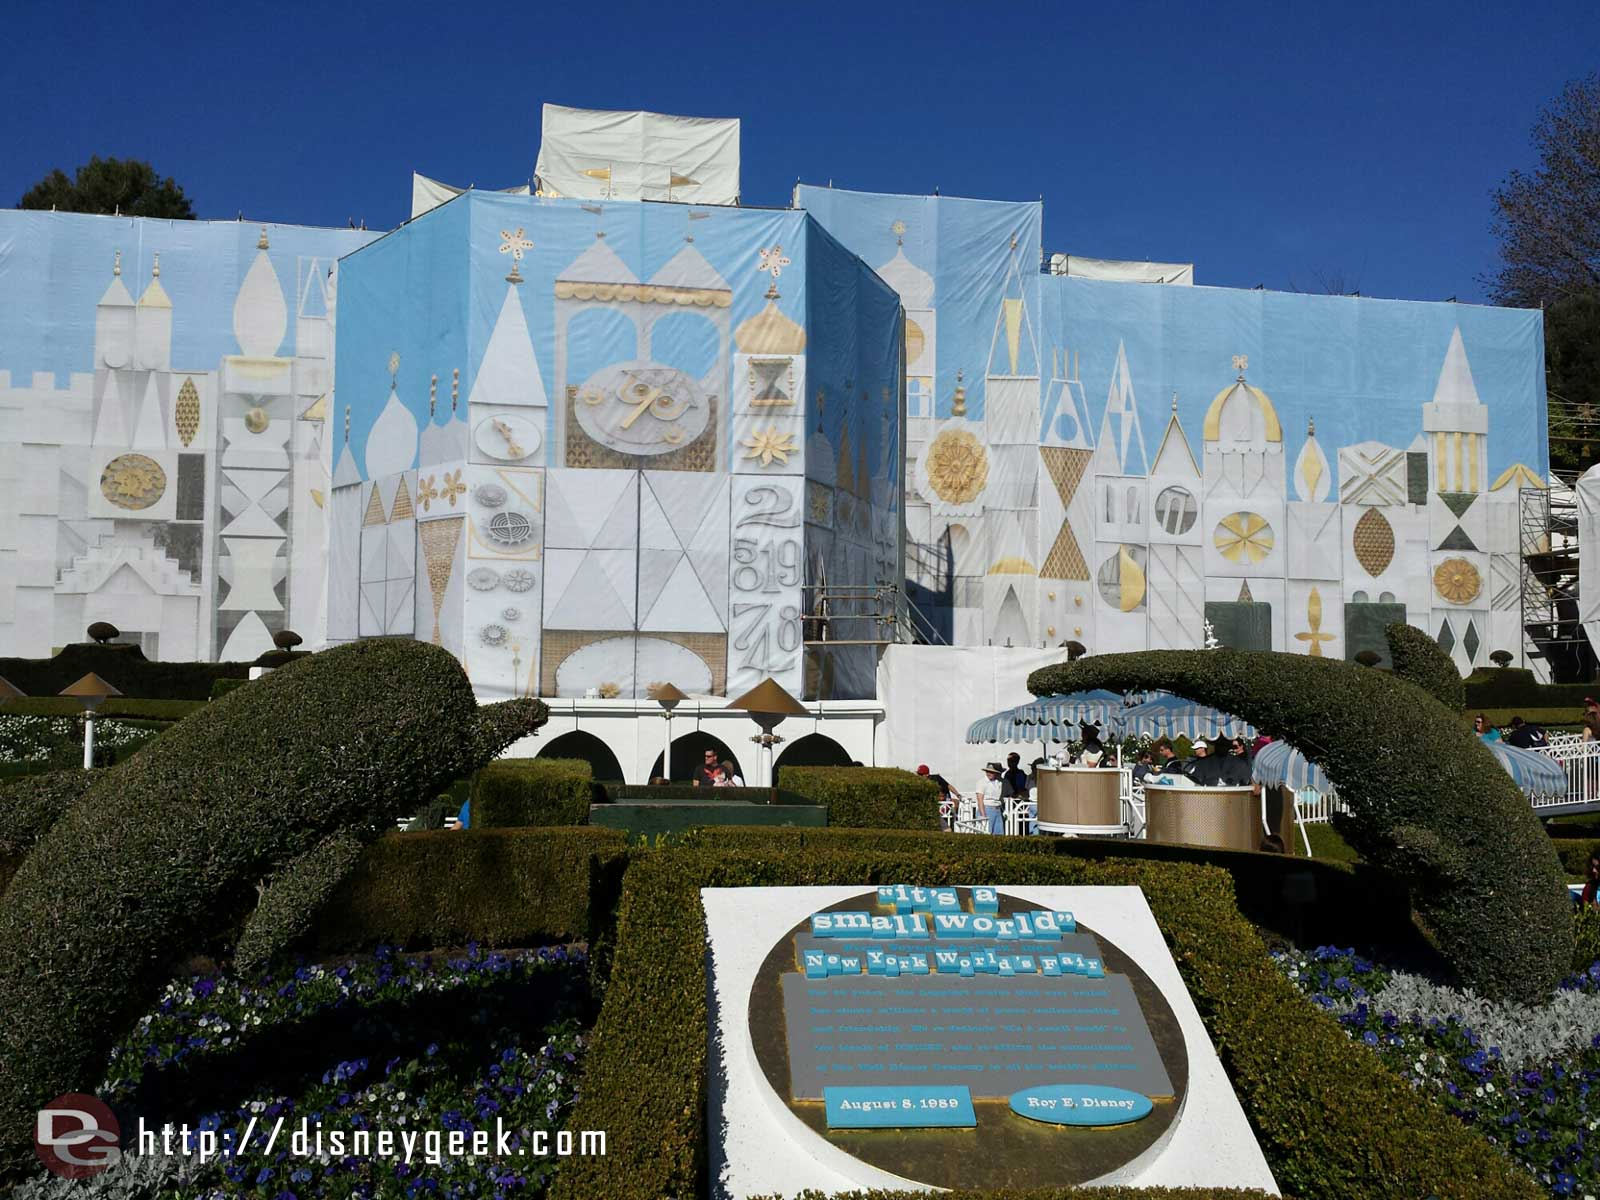 It's a small world has reopened after removing the holiday overlay – facade work continues though #Disneyland